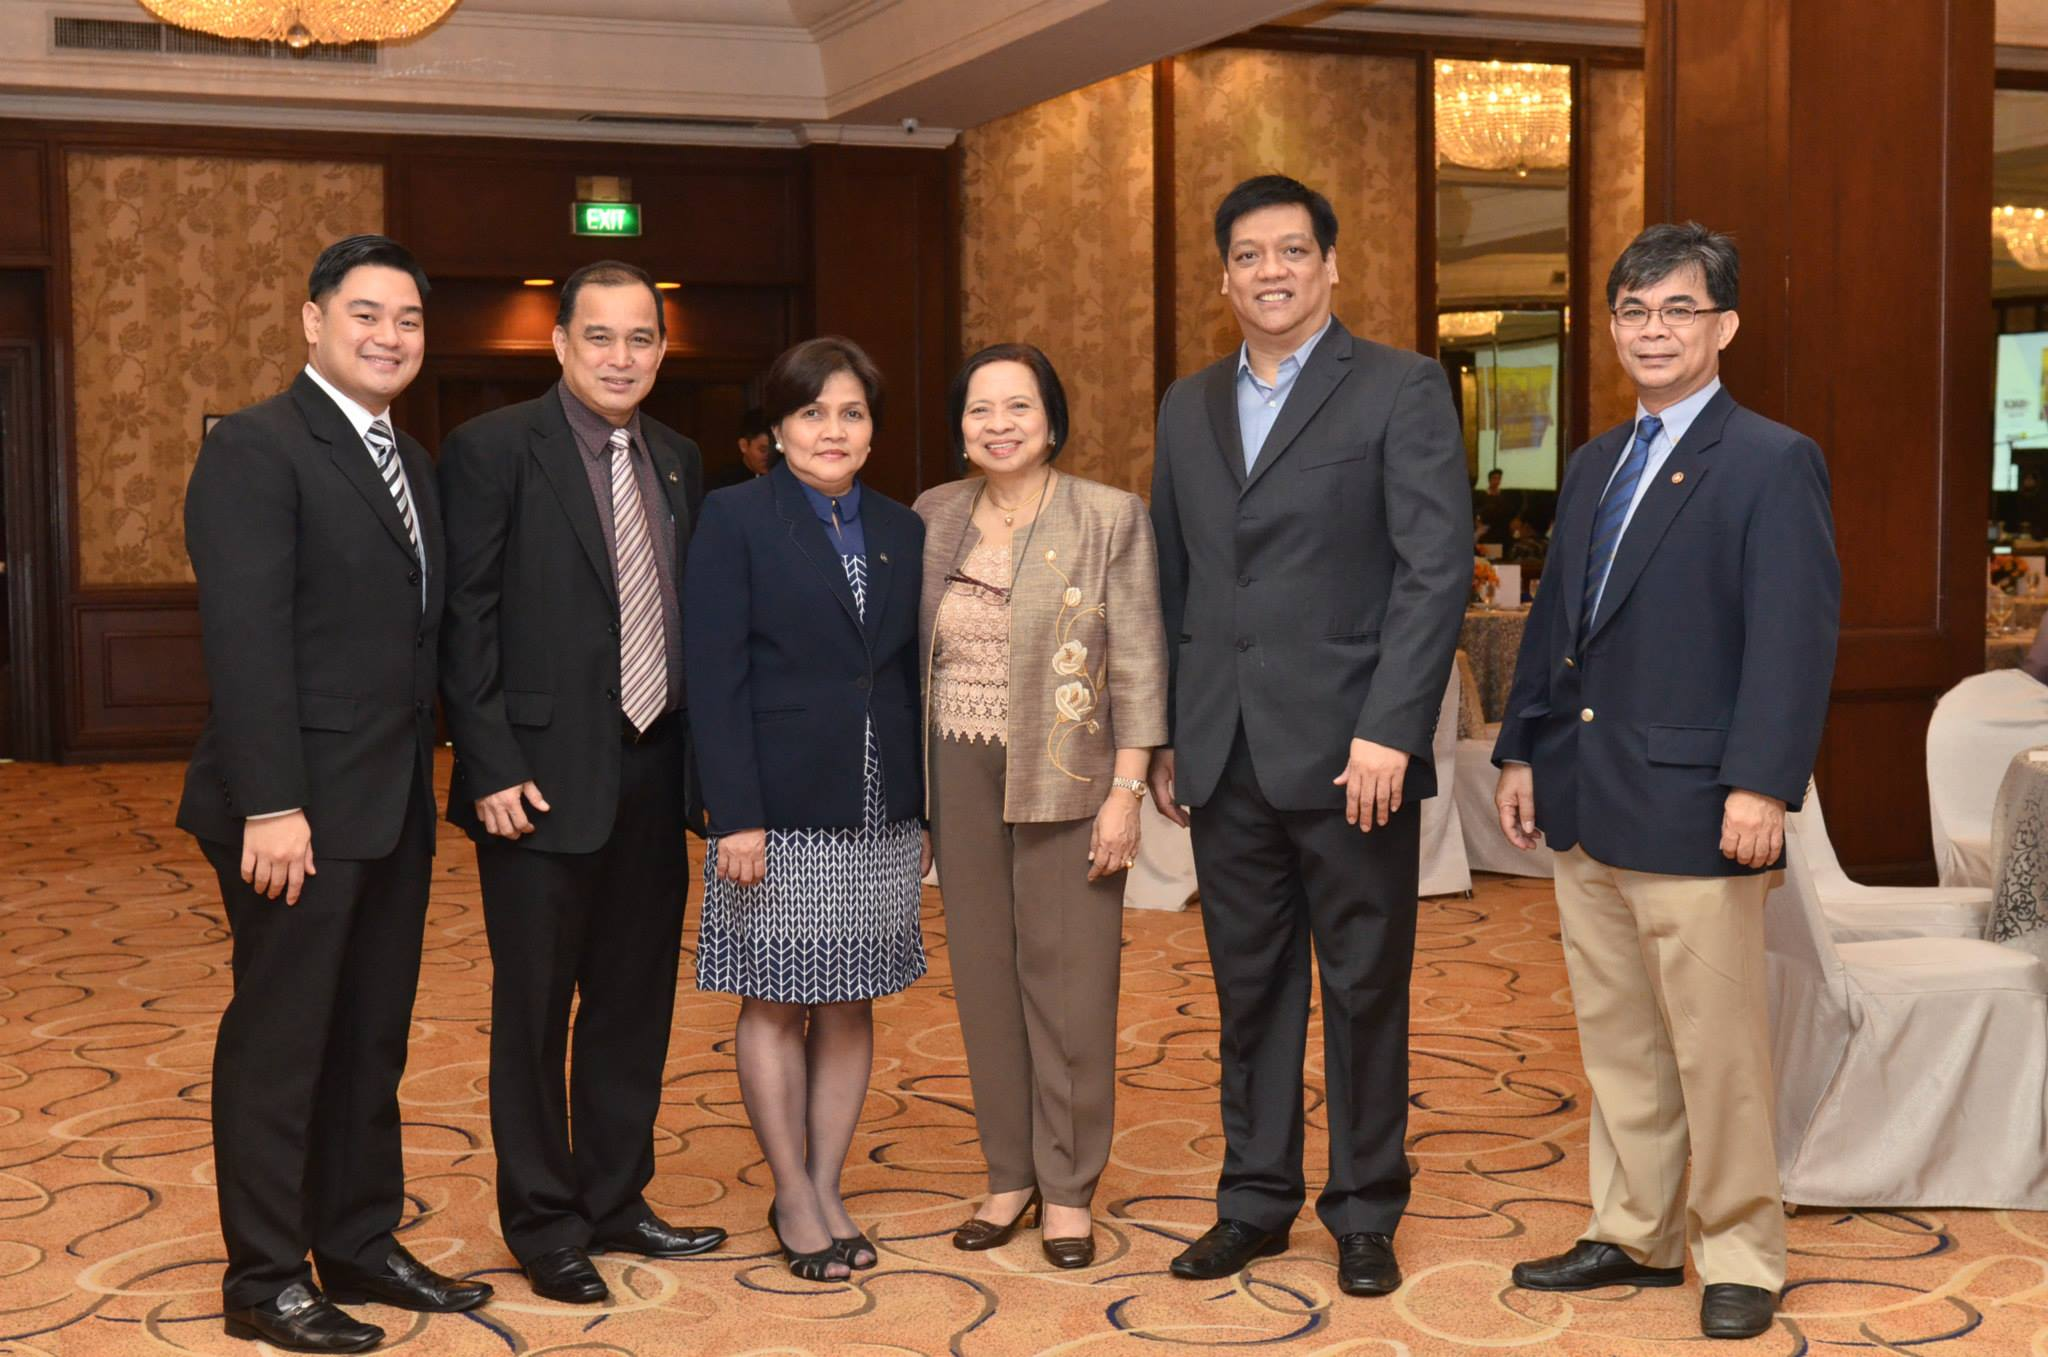 Philippines Chapter leaders.